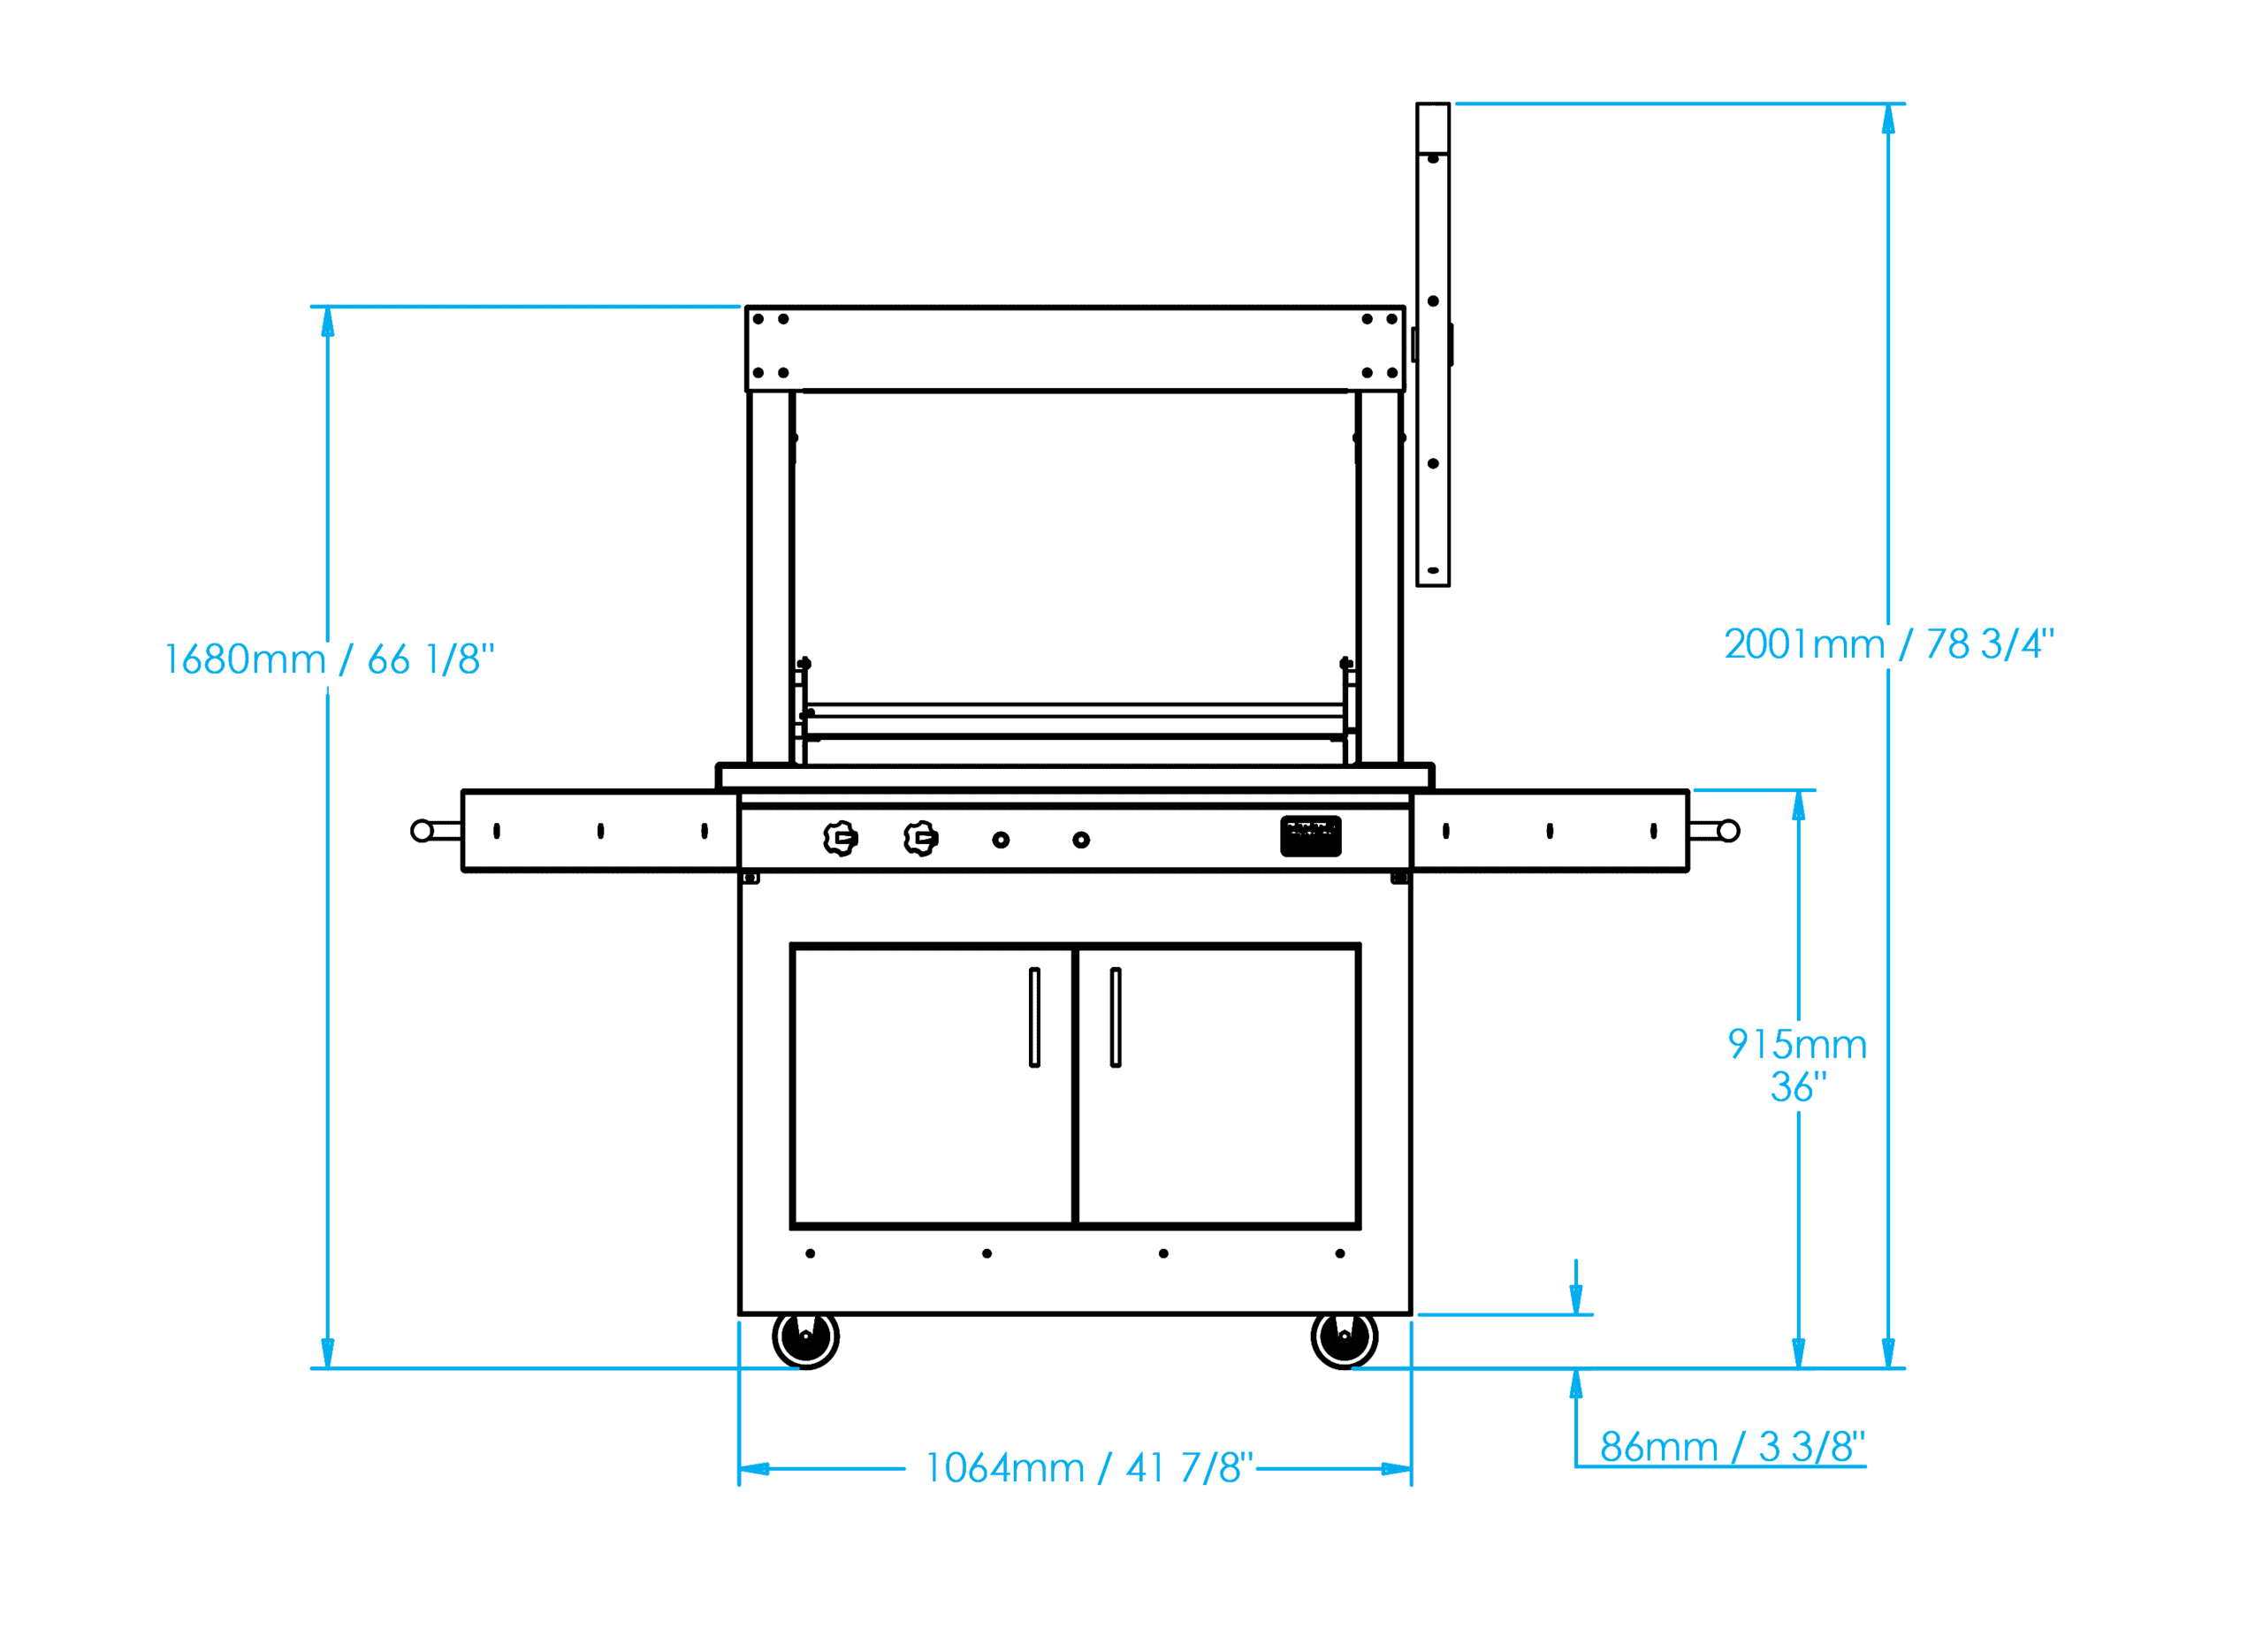 K750 Freestanding Gaucho Grill Dimensions Image